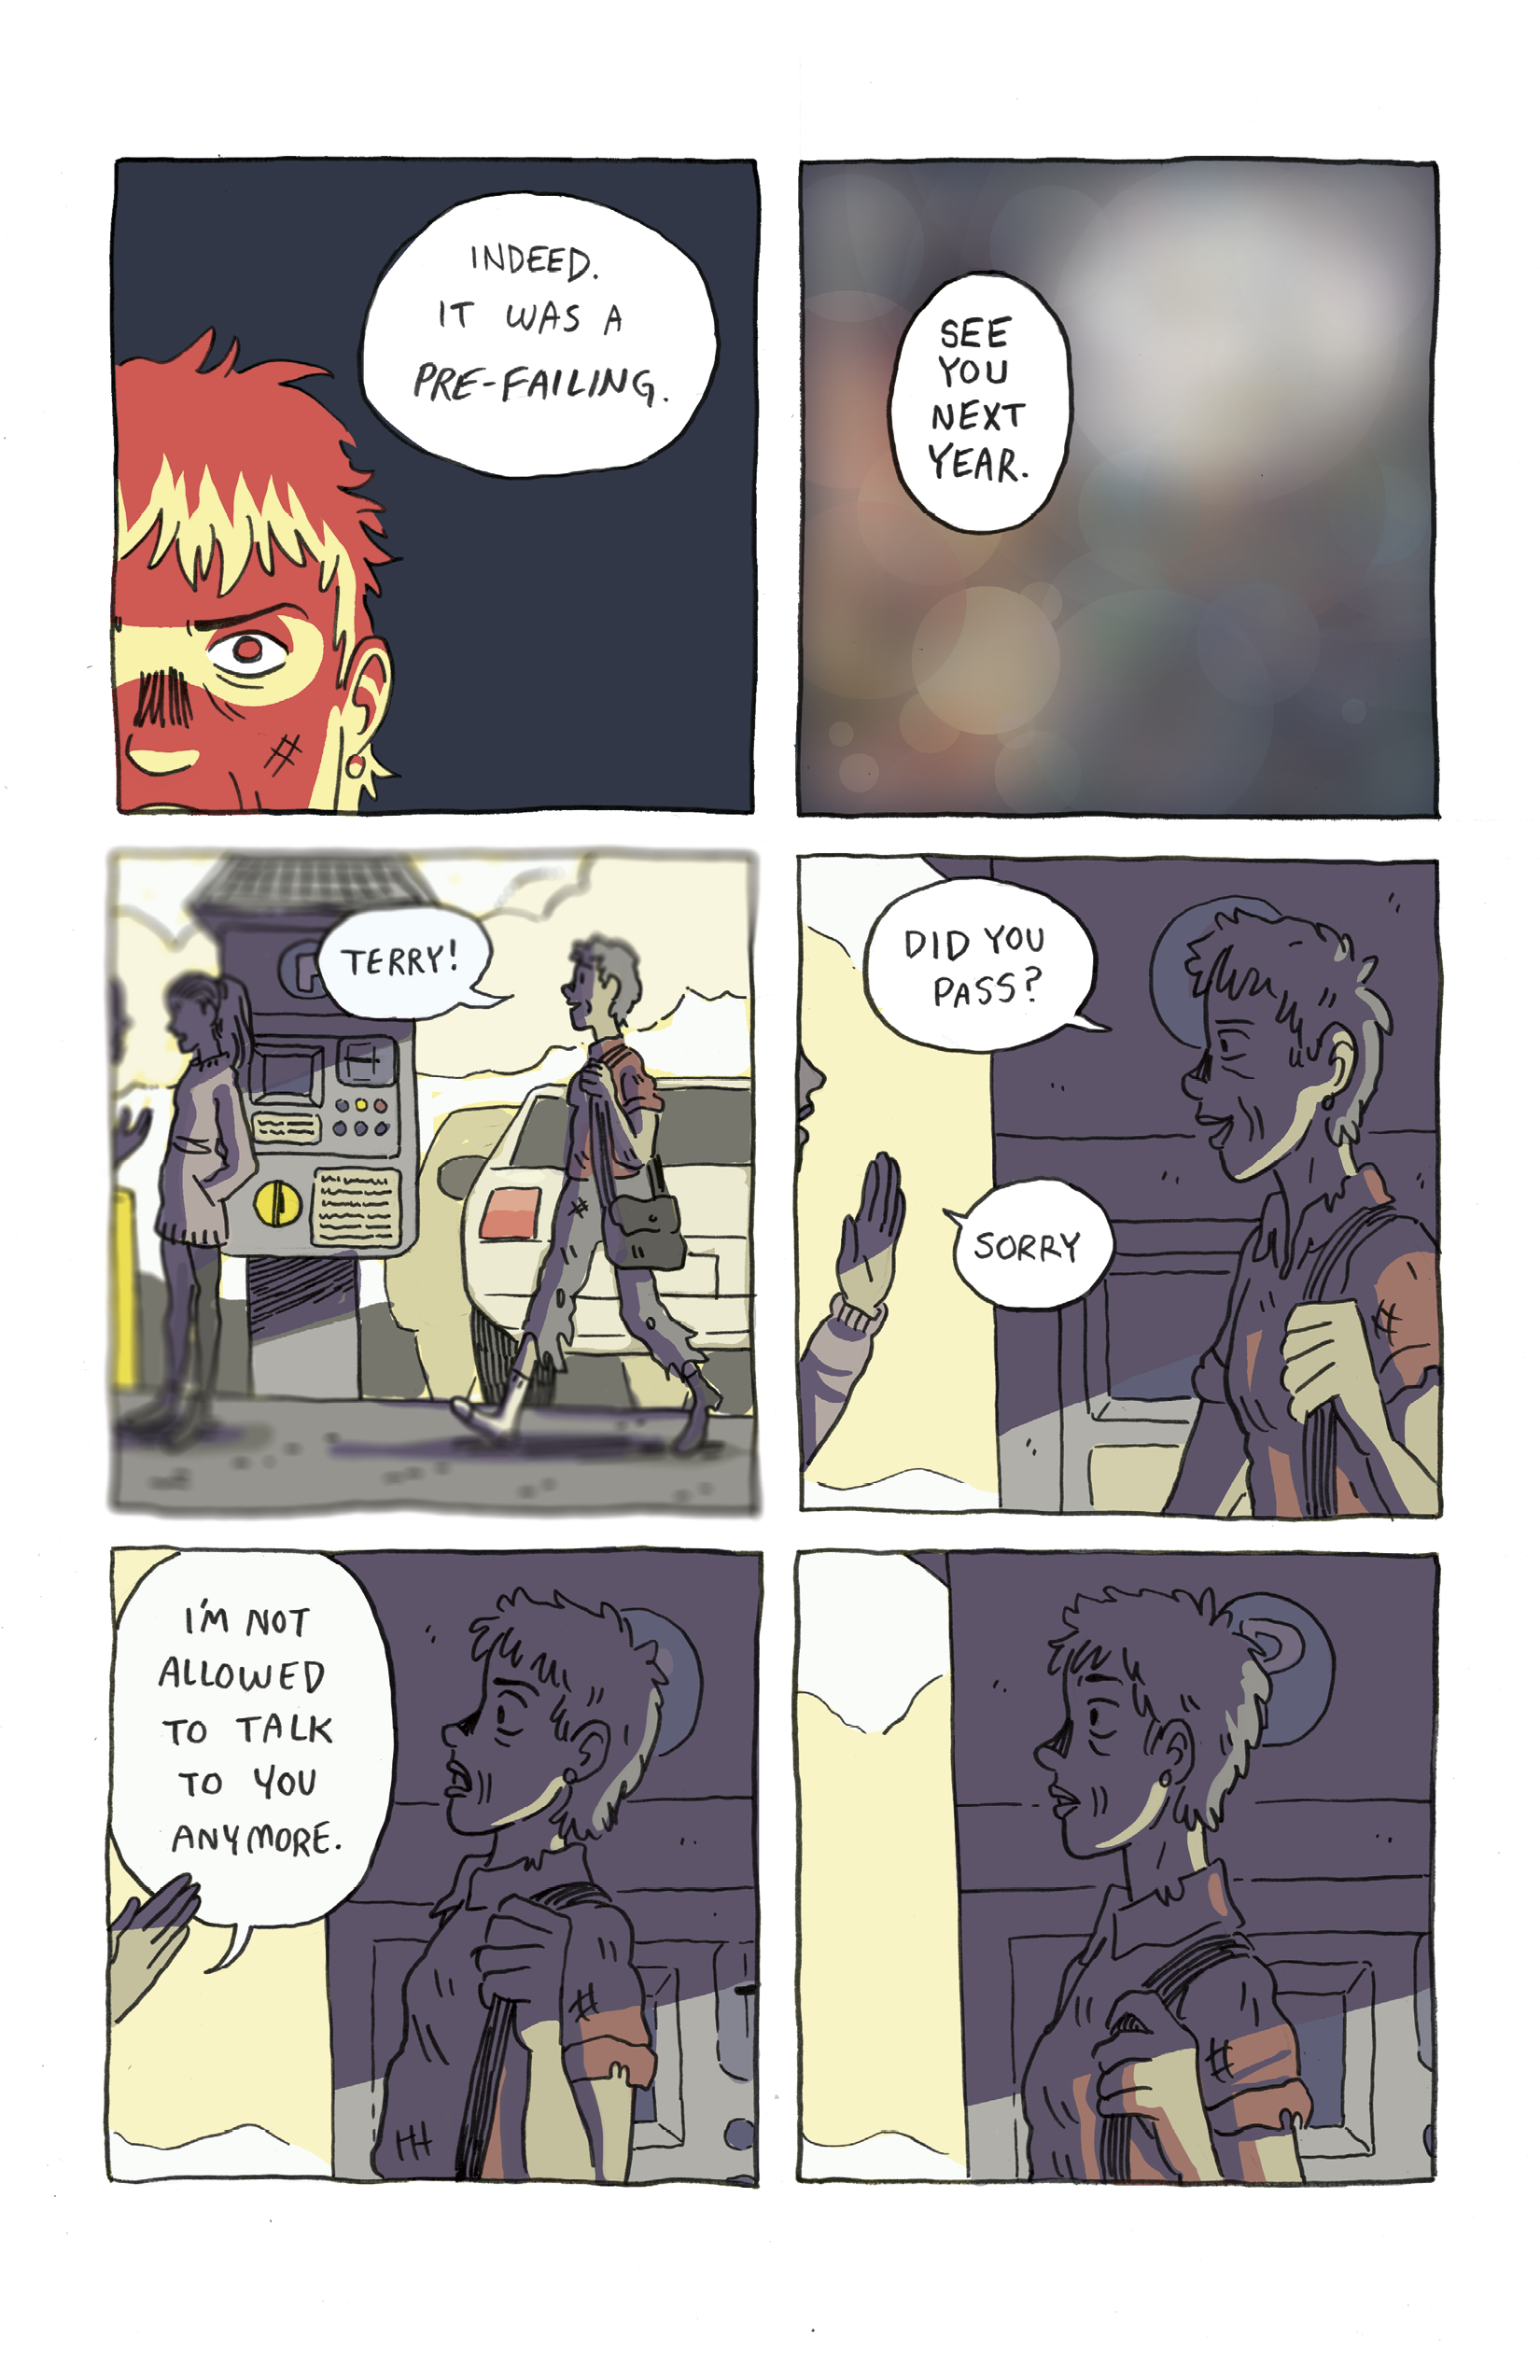 METANOIA_final_001_single_pages5.png